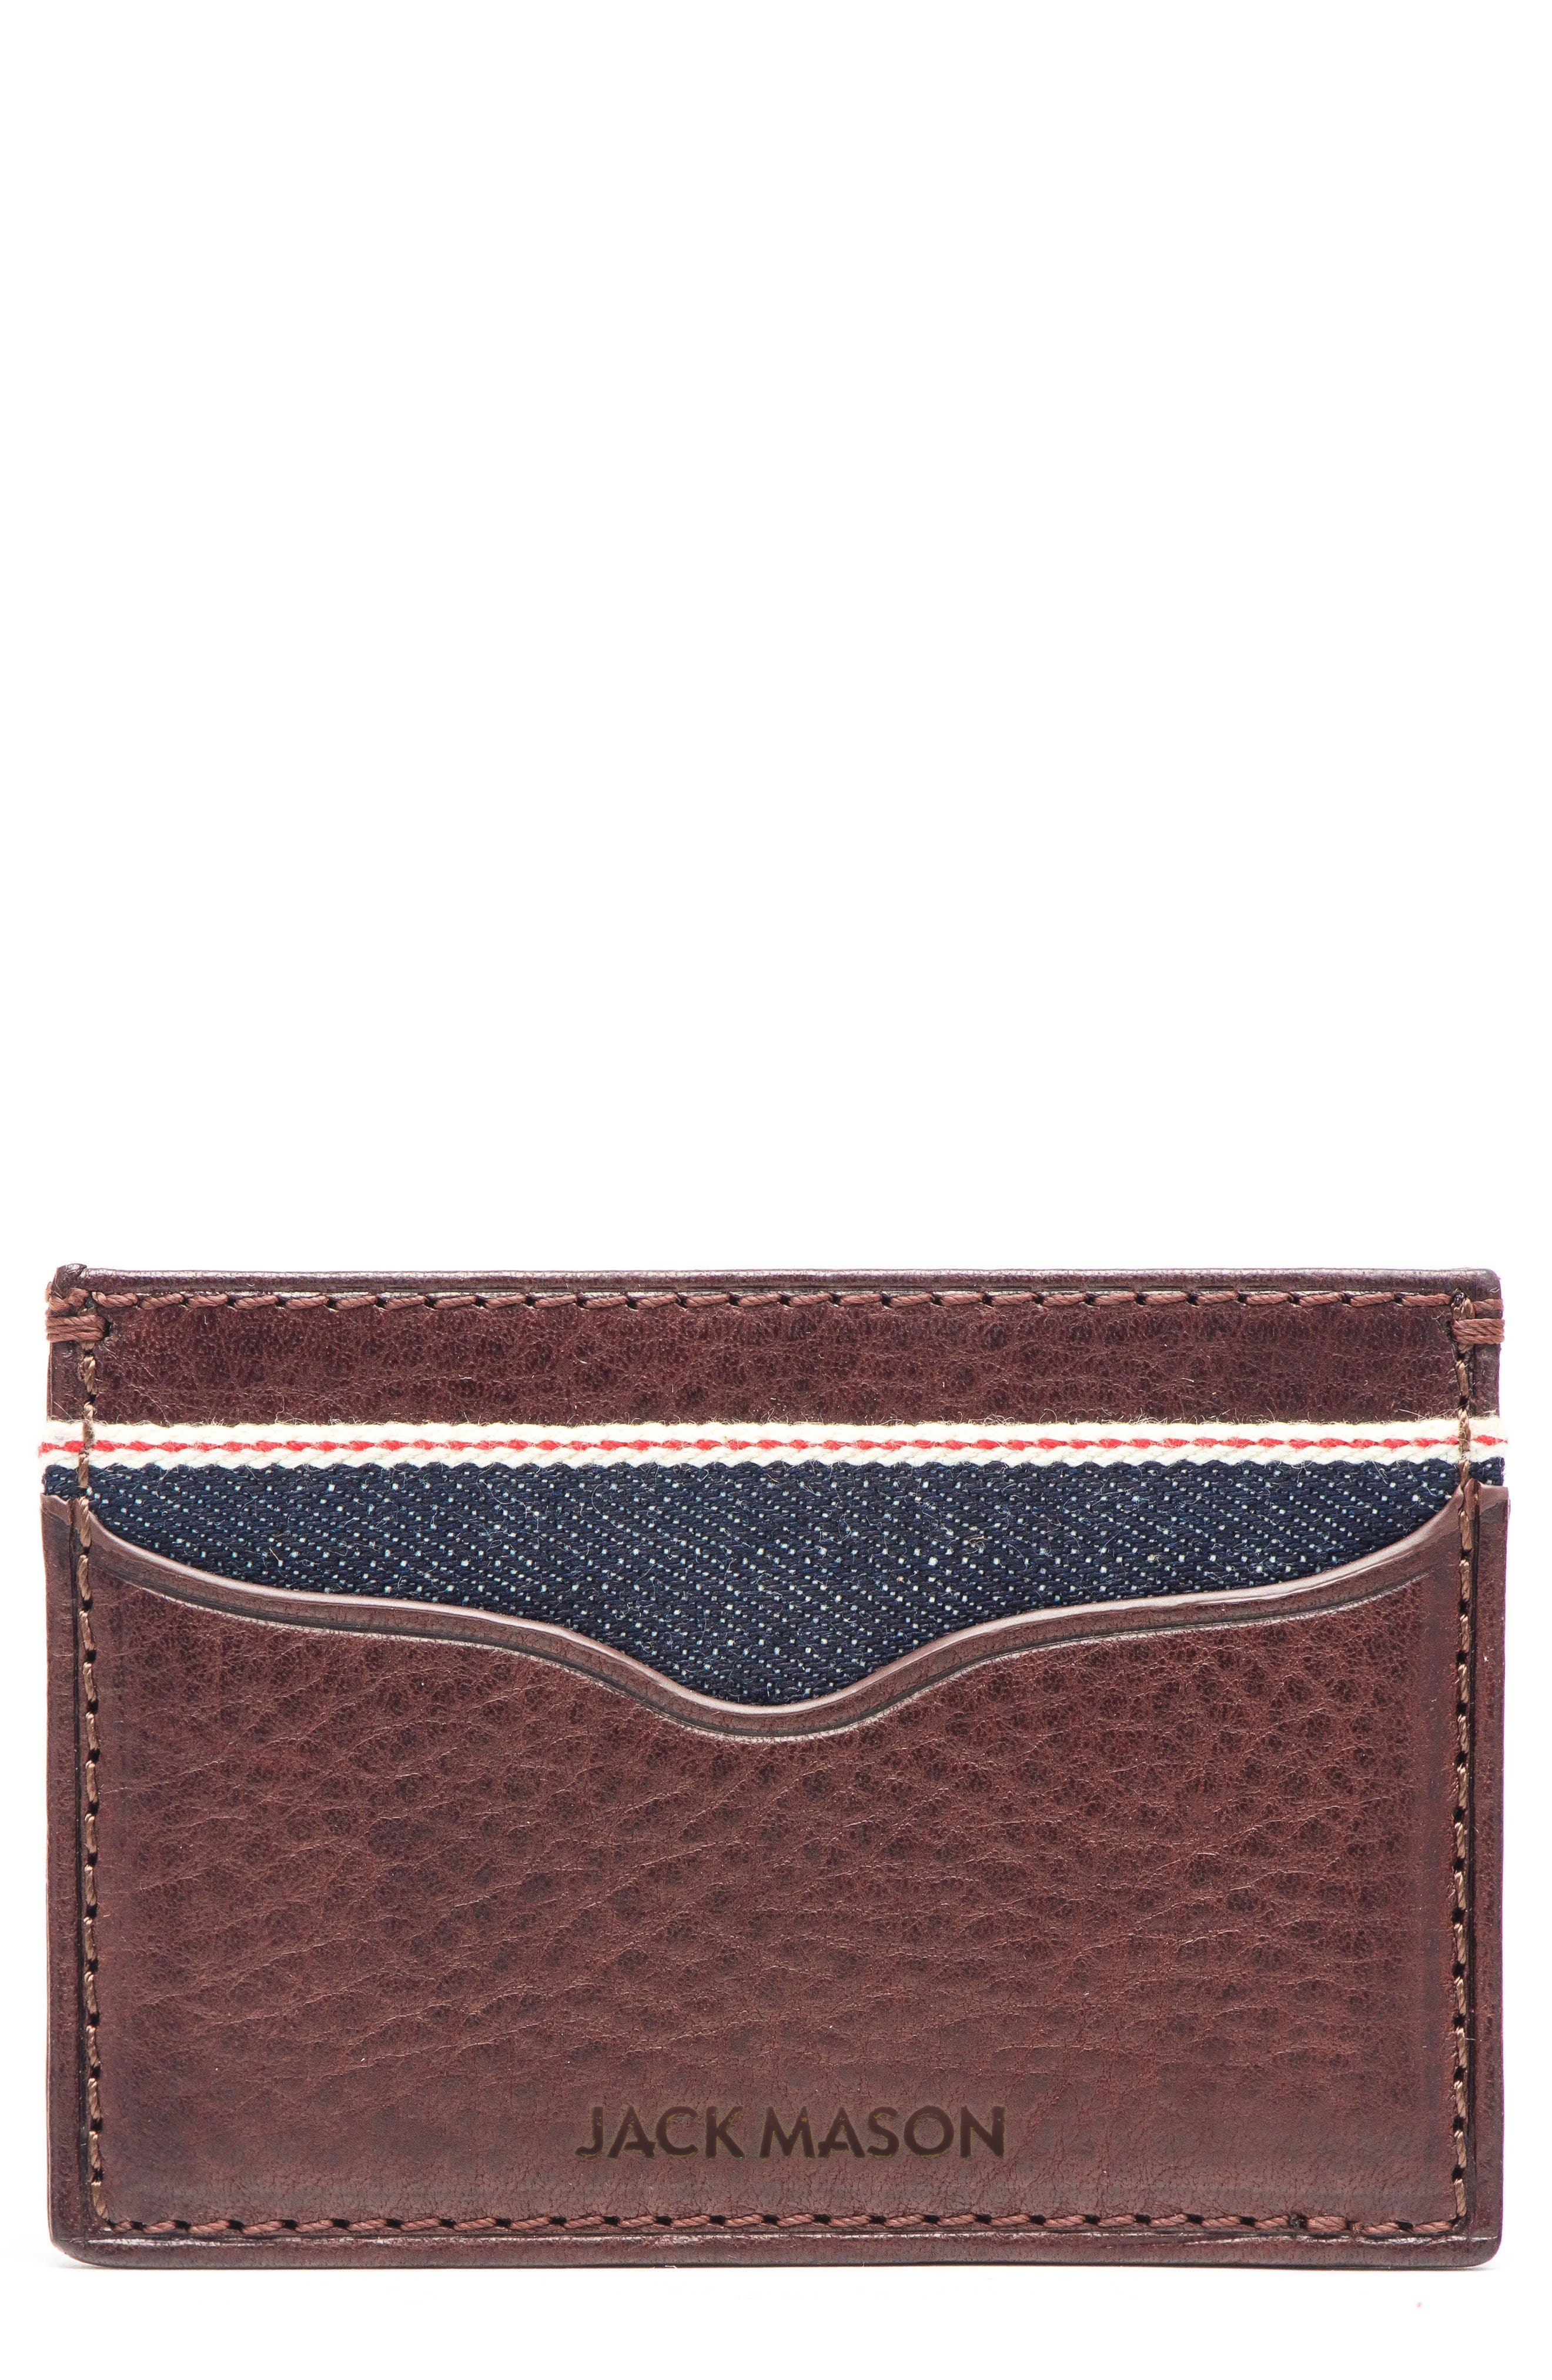 Leather & Denim Card Case,                         Main,                         color, Blue Denim And Brown Leather